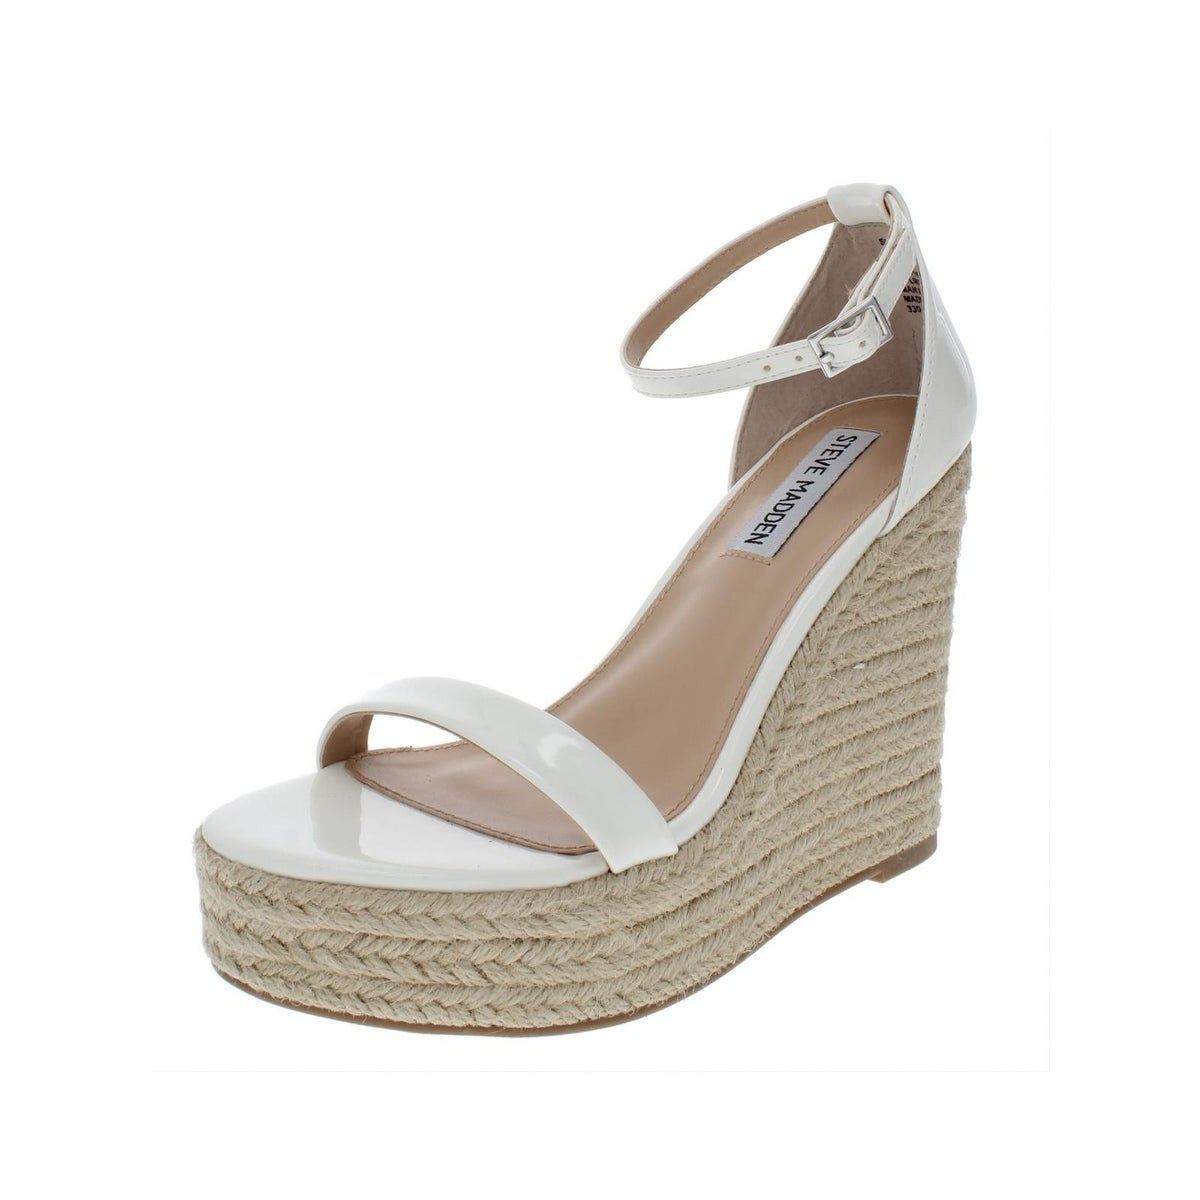 5a86e505454 Steve Madden Women s Shoes